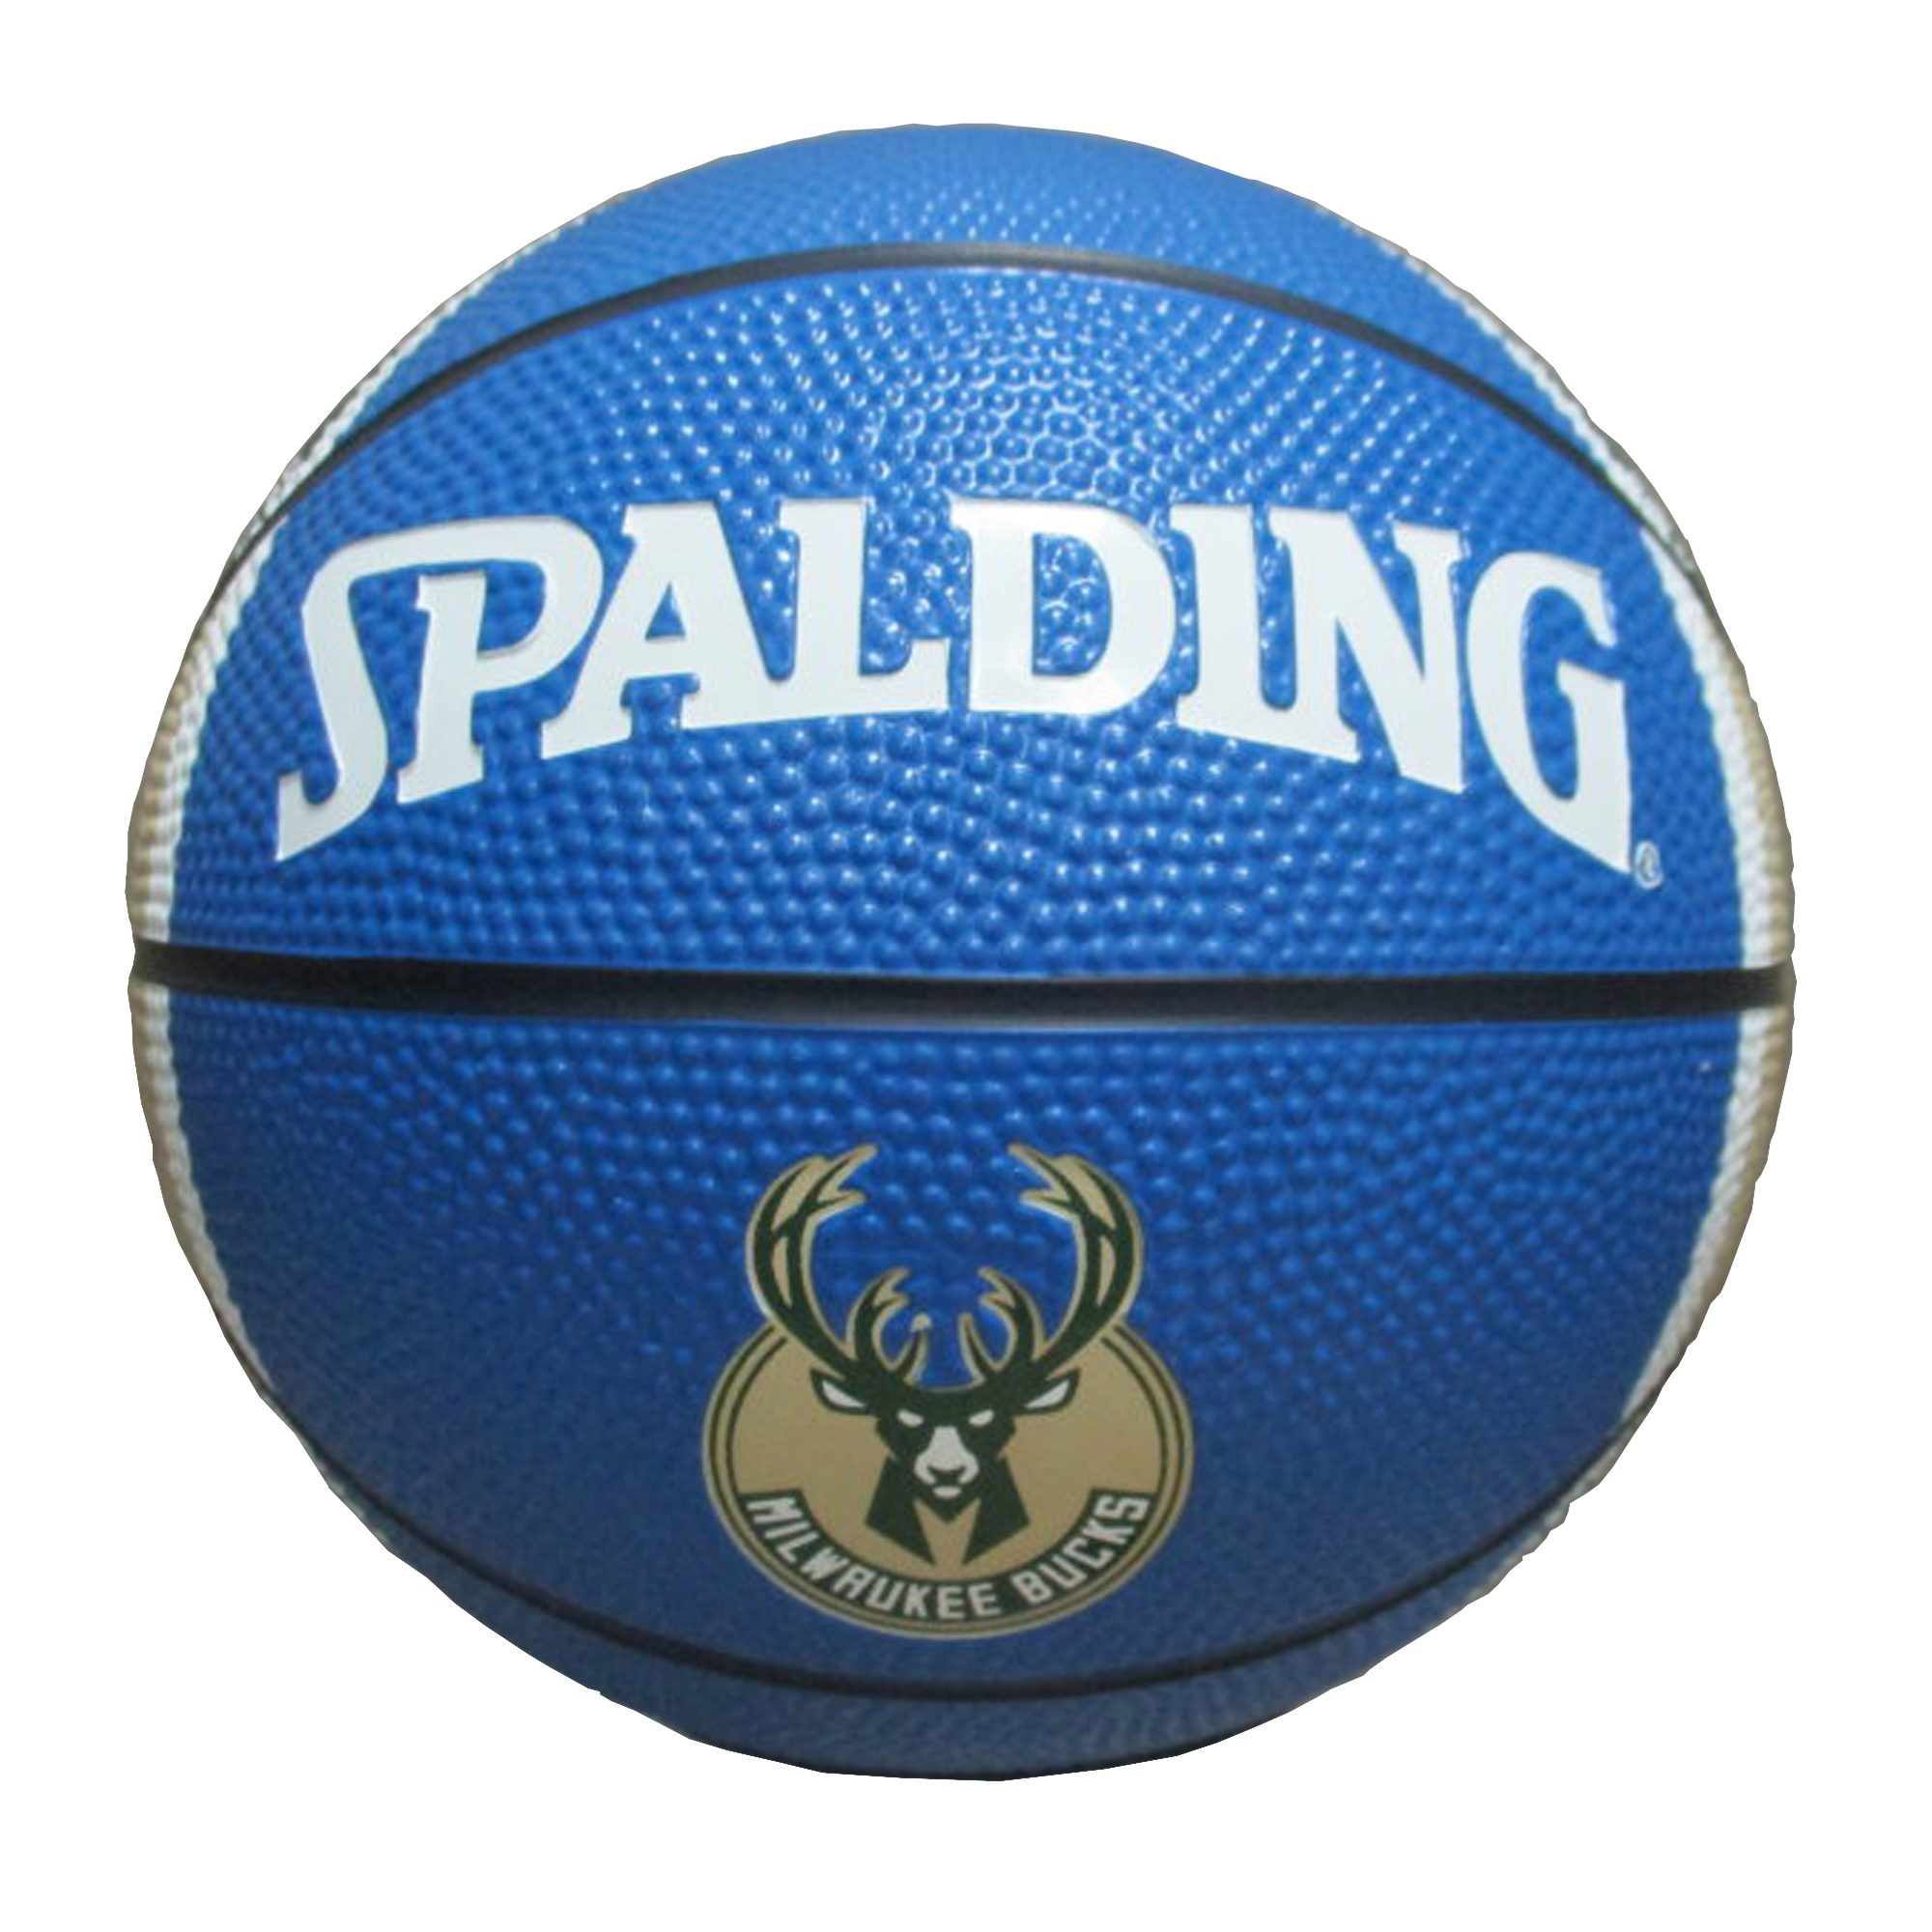 Spaulding - NBA 7 Inch Mini Basketball, Milwaukee Bucks